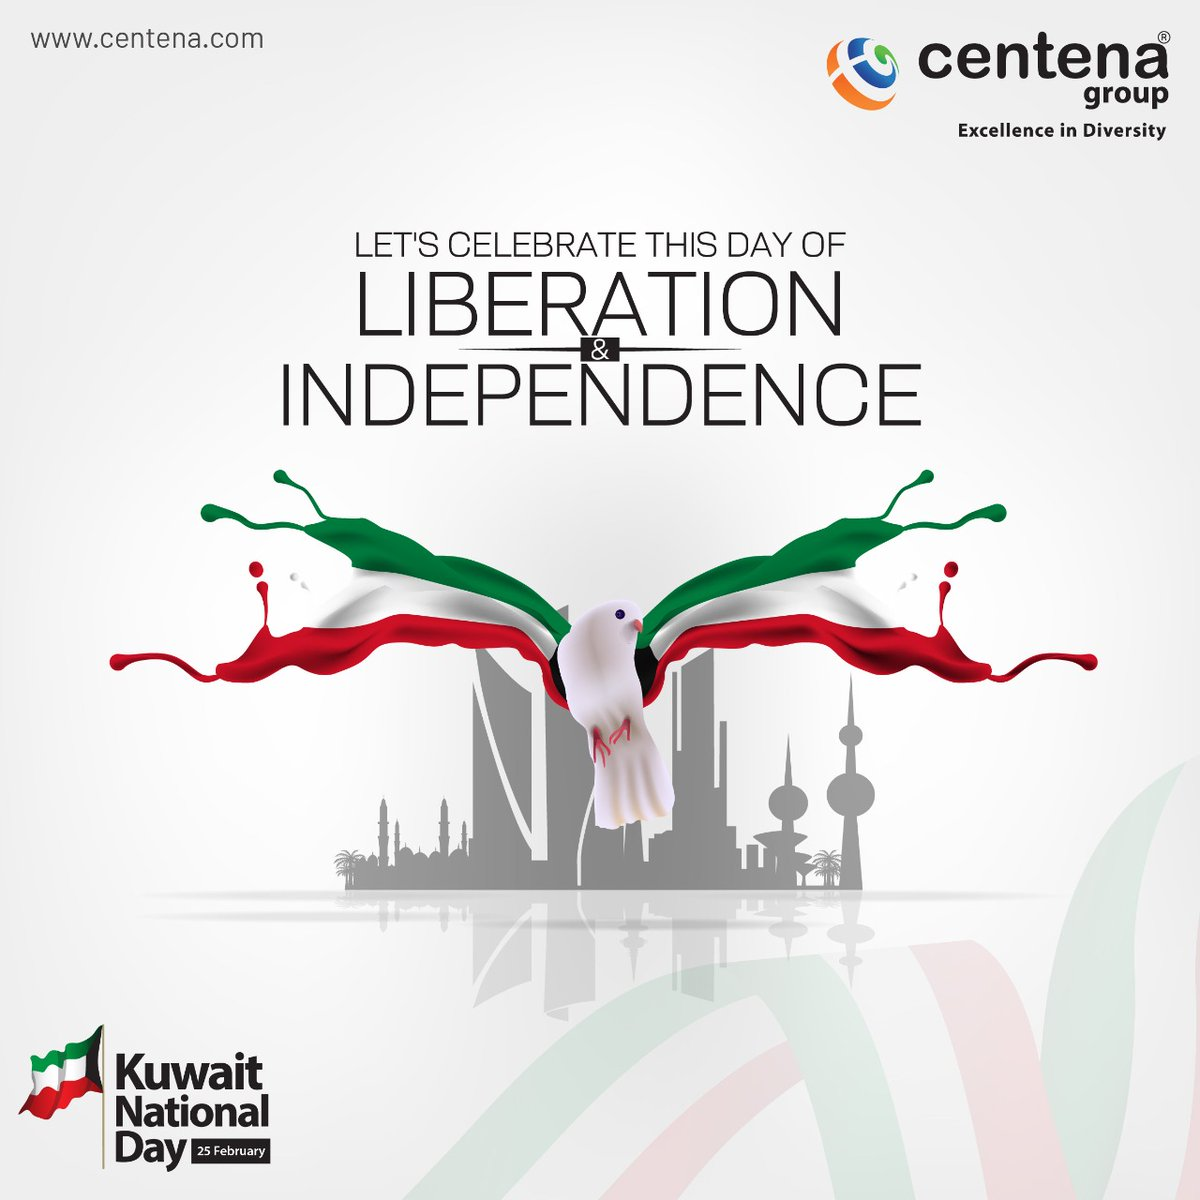 Centena Group wishes you a Happy Kuwait National Day! Let us celebrate this day of Liberation and Independence!   #pride #liberation #independence #specialday #kuwait #celebration #nationalday2021 #leadership #wishes #hope  #peace #joy #centenagroup